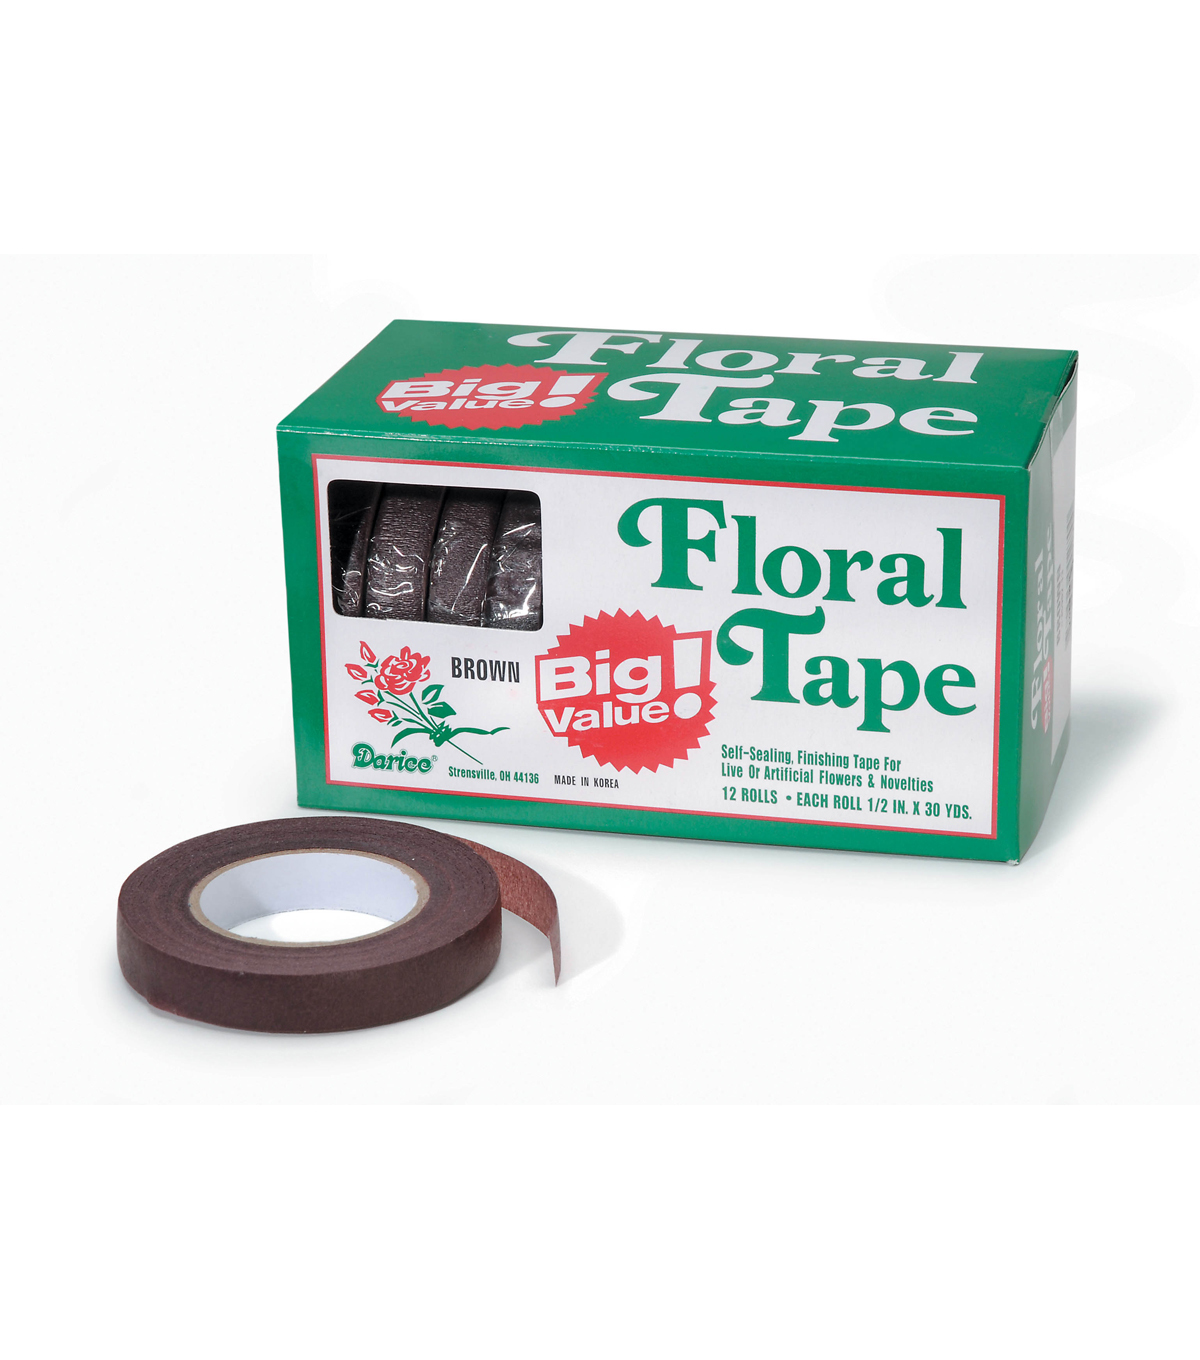 Floral Tape Val Box 12 Rolls/30 Yards Each